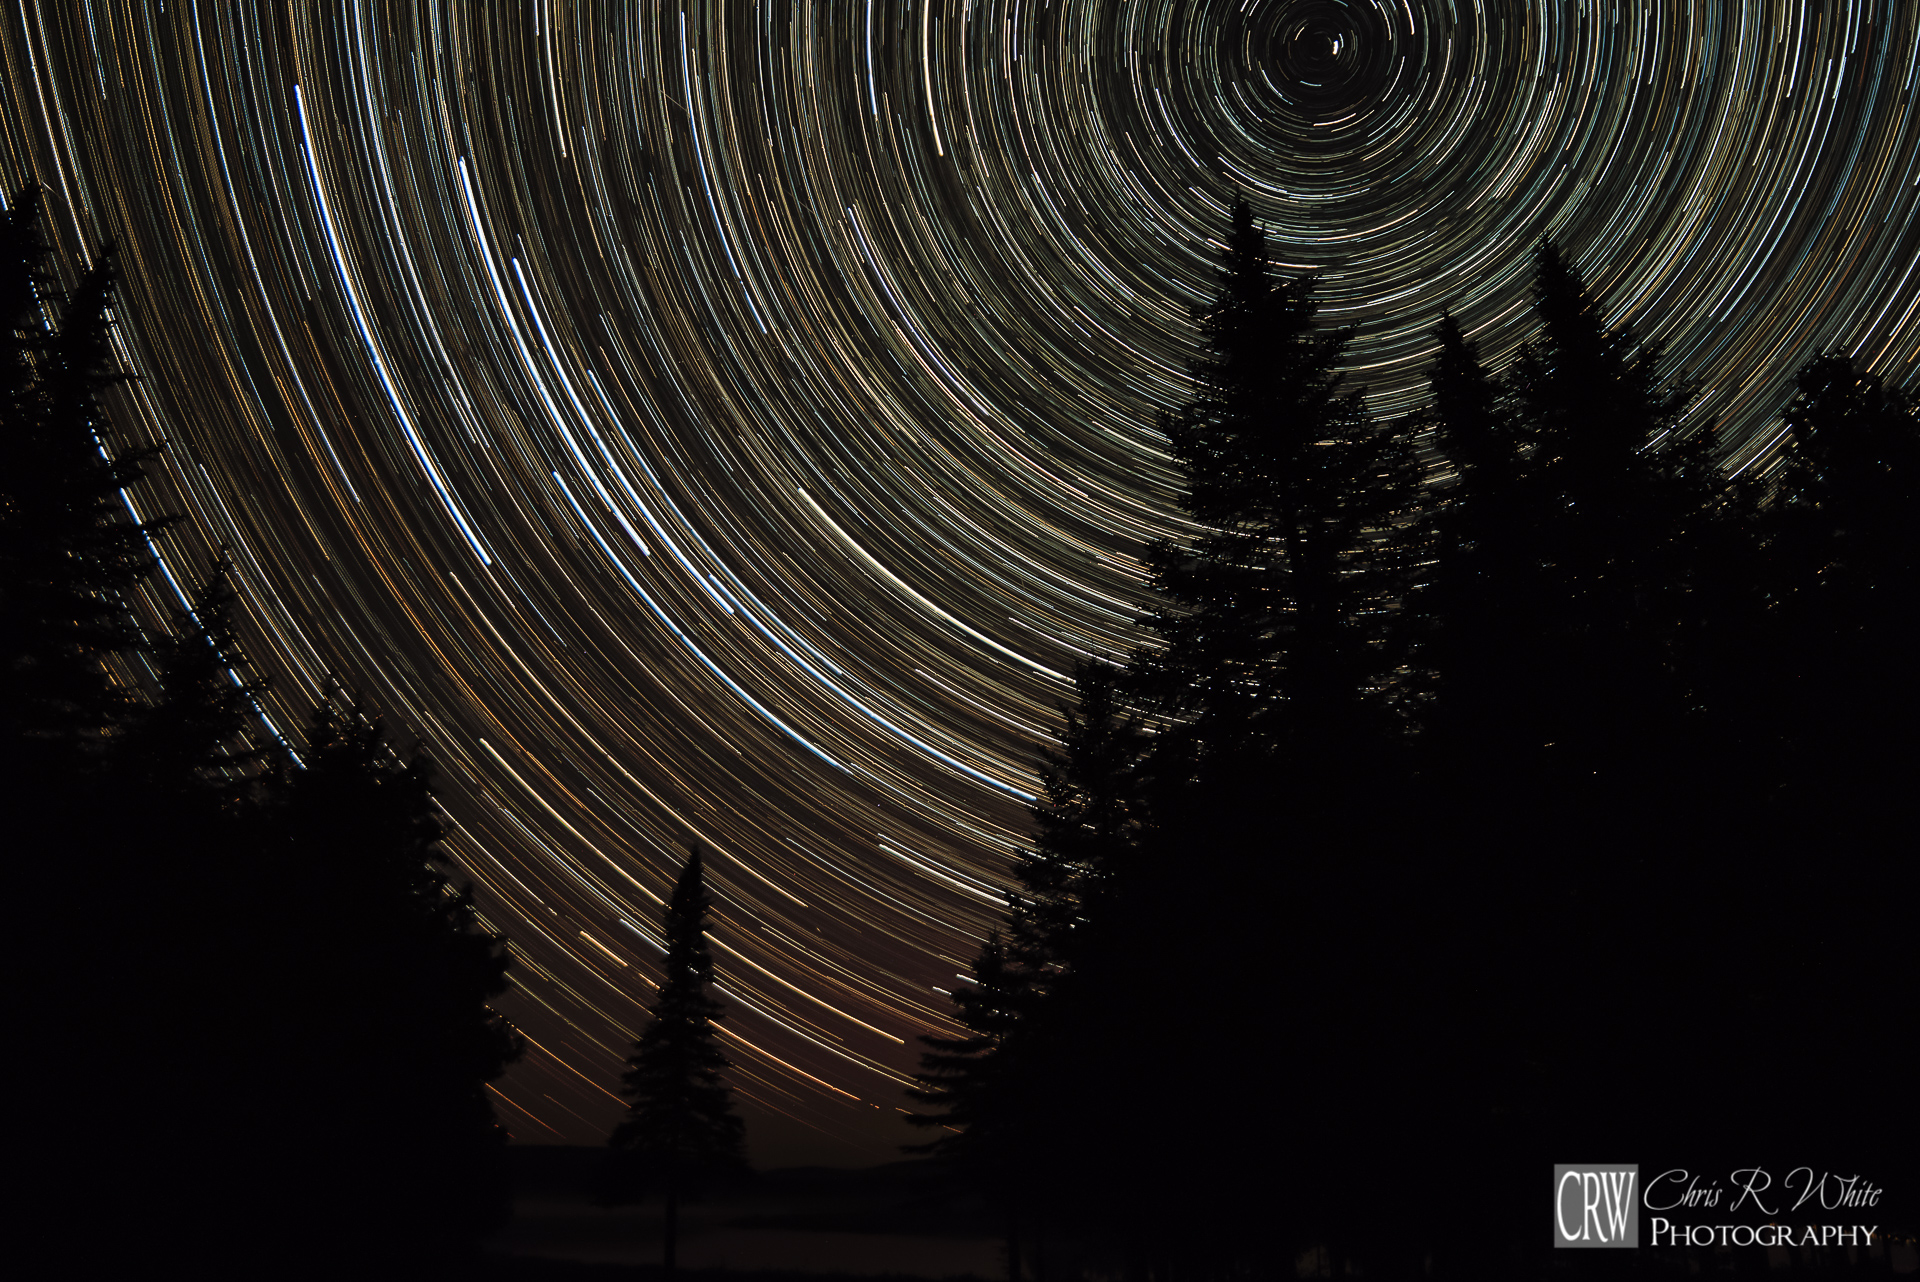 These star trails were created by combining 207 separate exposures of 30 seconds each, chronicling over an hour and half of apparent movement as the Earth rotates.    -Canon 7DII, Rokinon 14mm, f2.8, Combined 30 Second Exposures (207), ISO 1600-